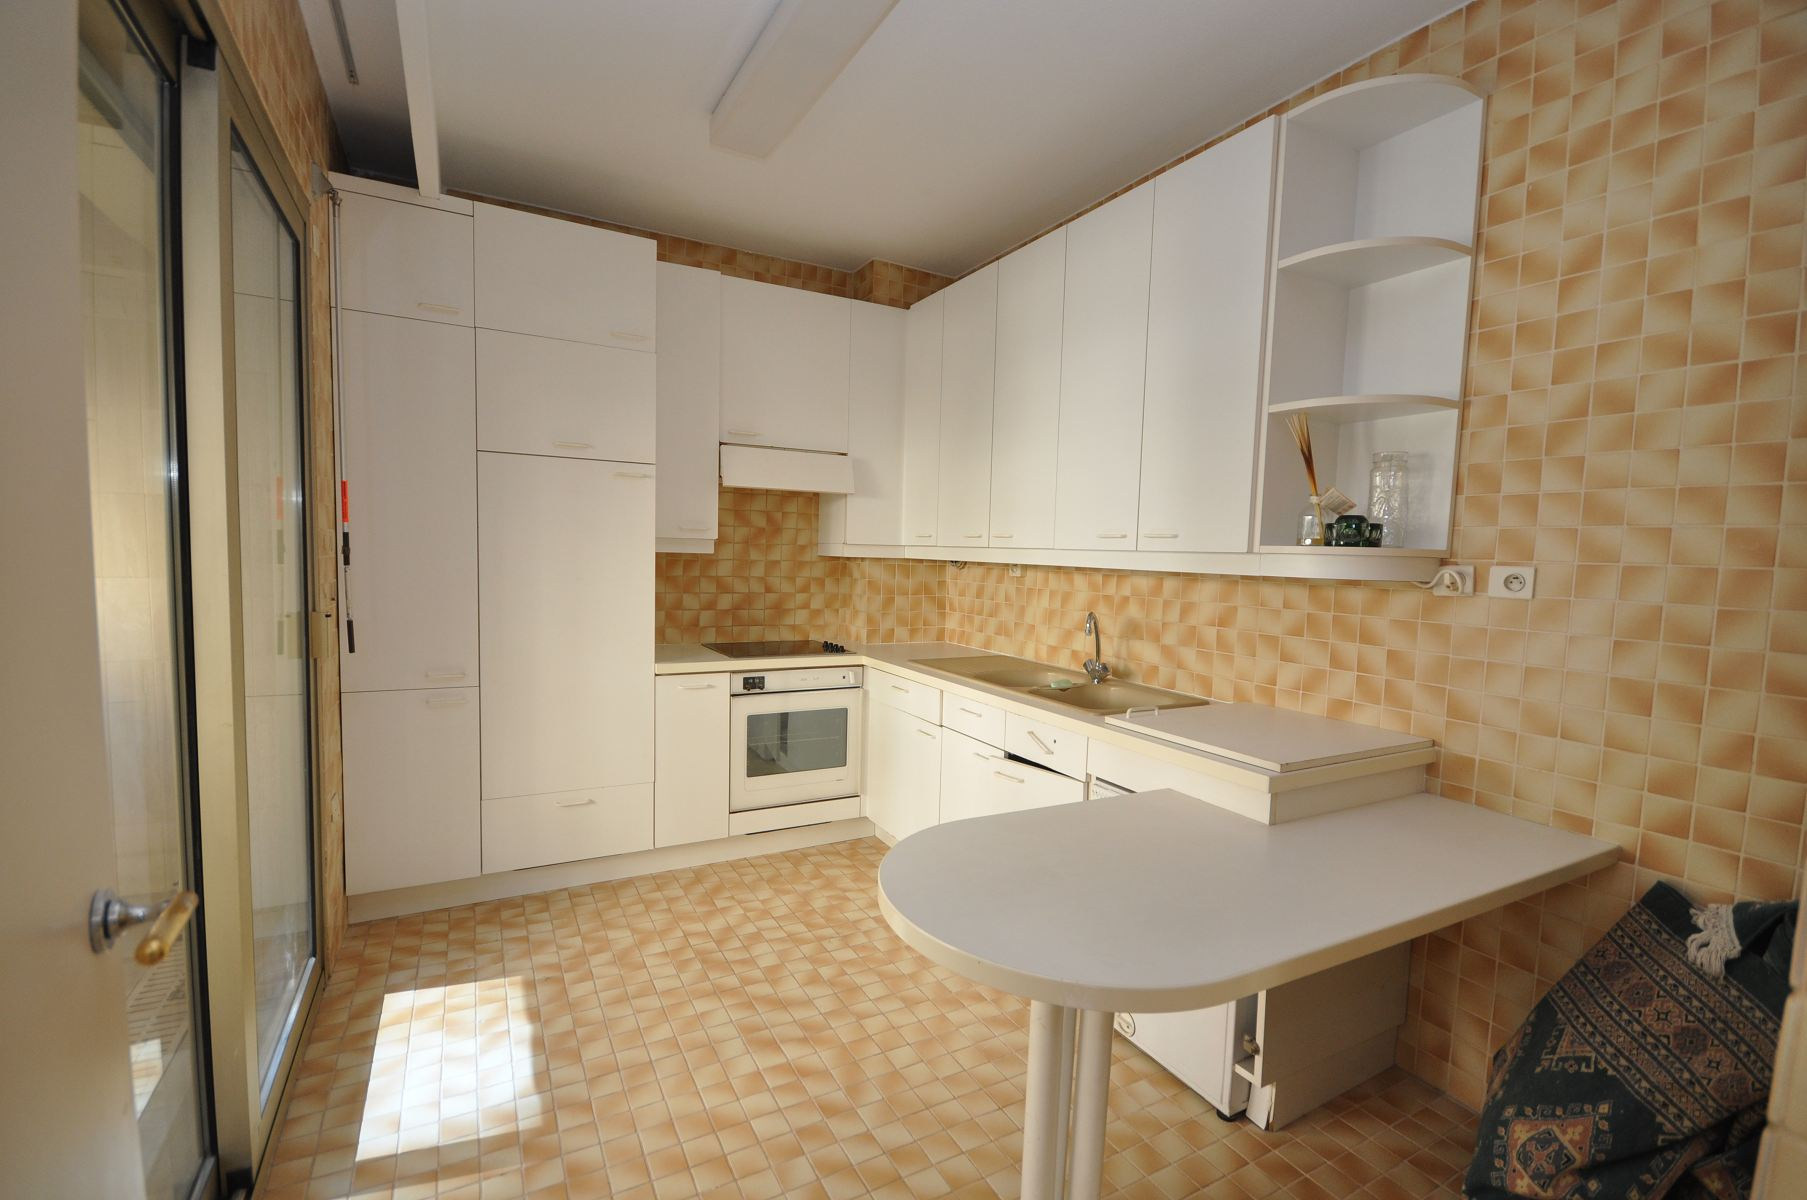 Venta 2 Room Apartment In The Carr D Or Monaco Monte Carlo # Muebles Cic Bodega